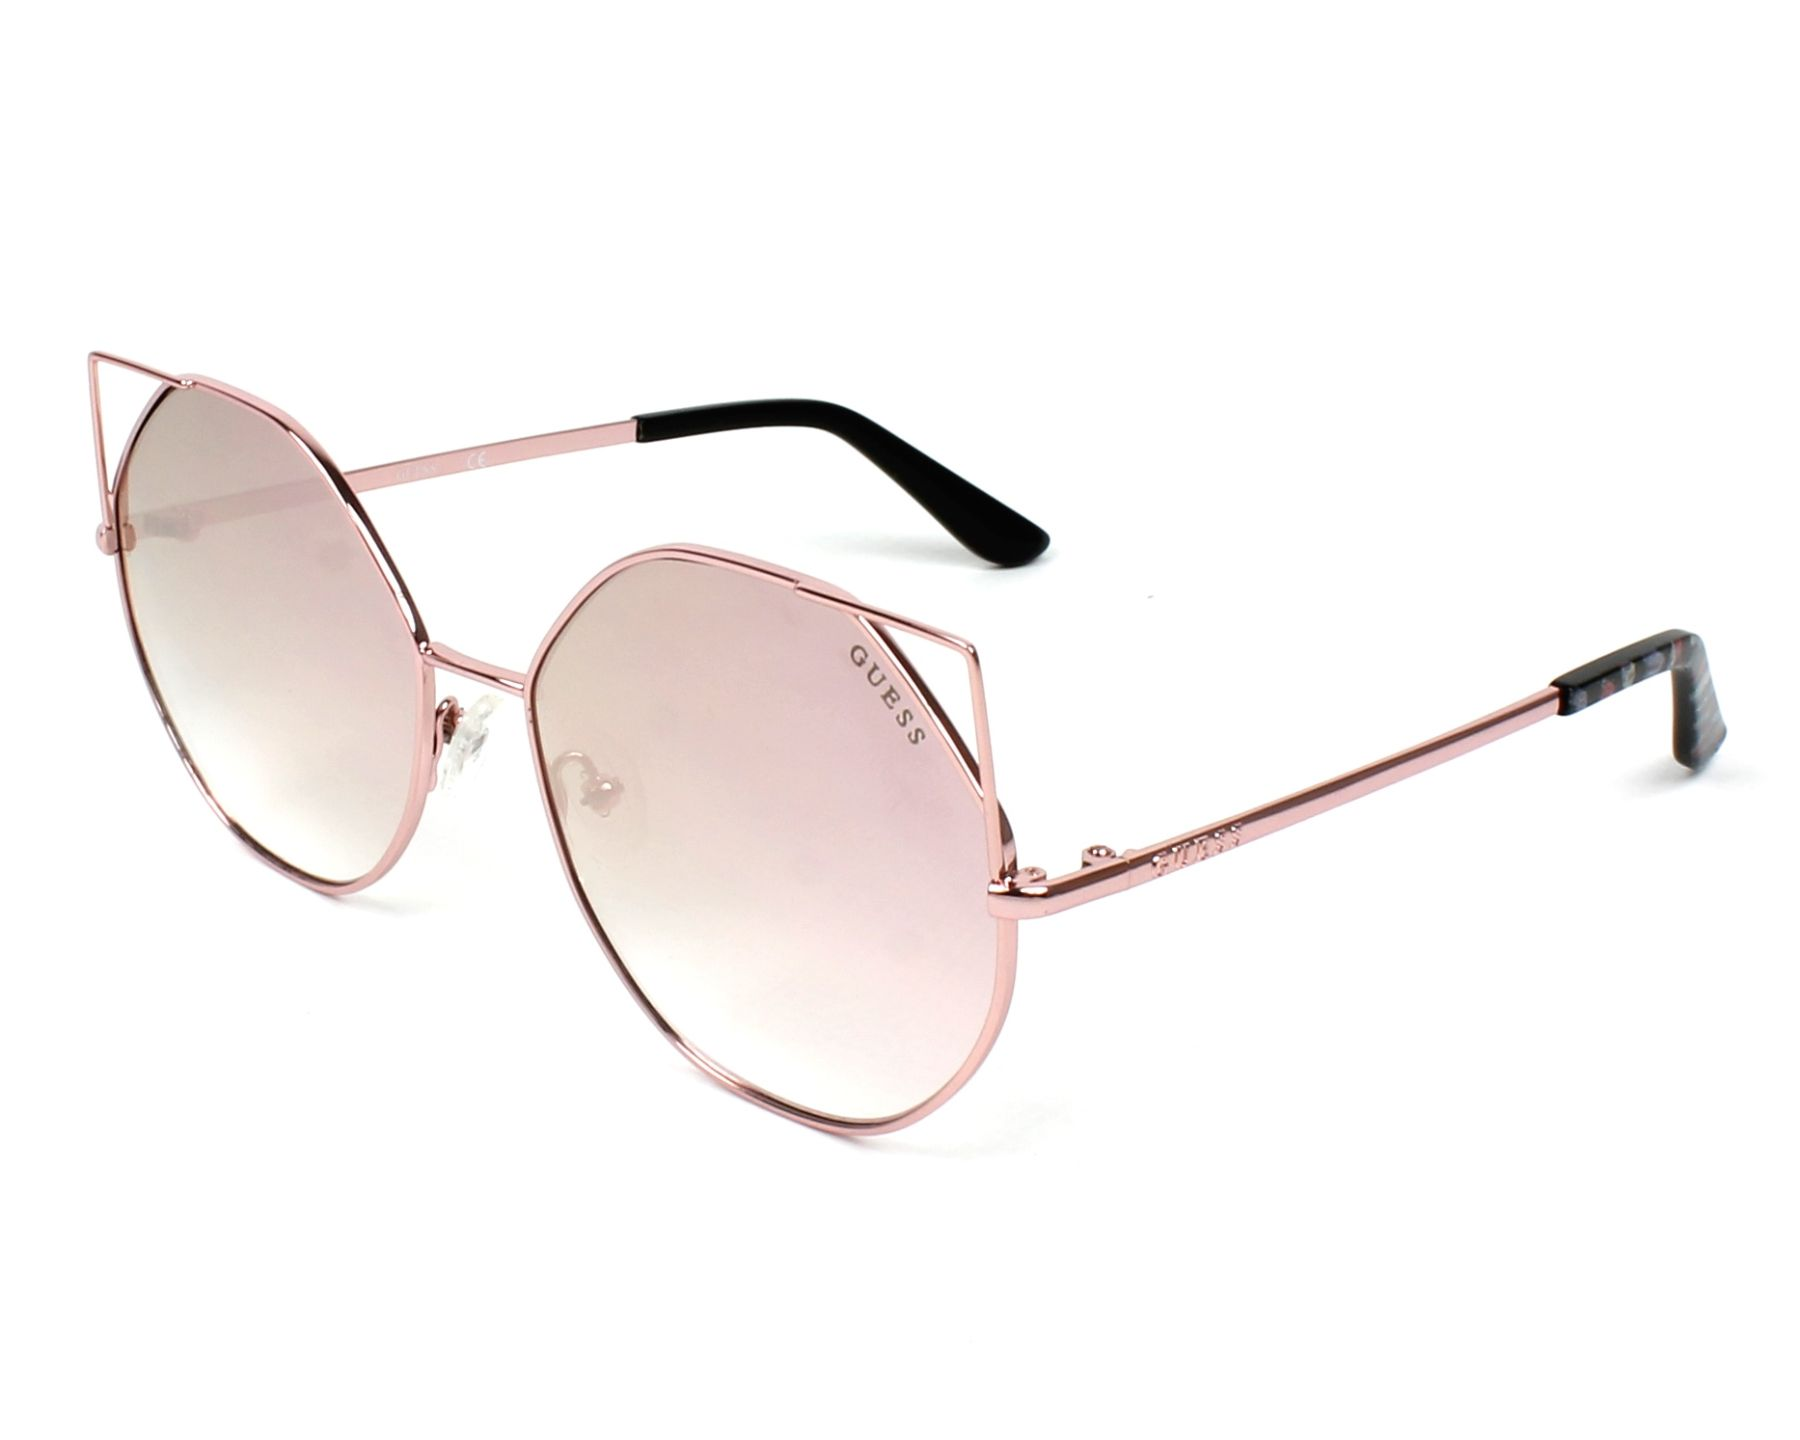 Guess Sunglasses Rose gold with Grey green Lenses GU-7527 28Z ...